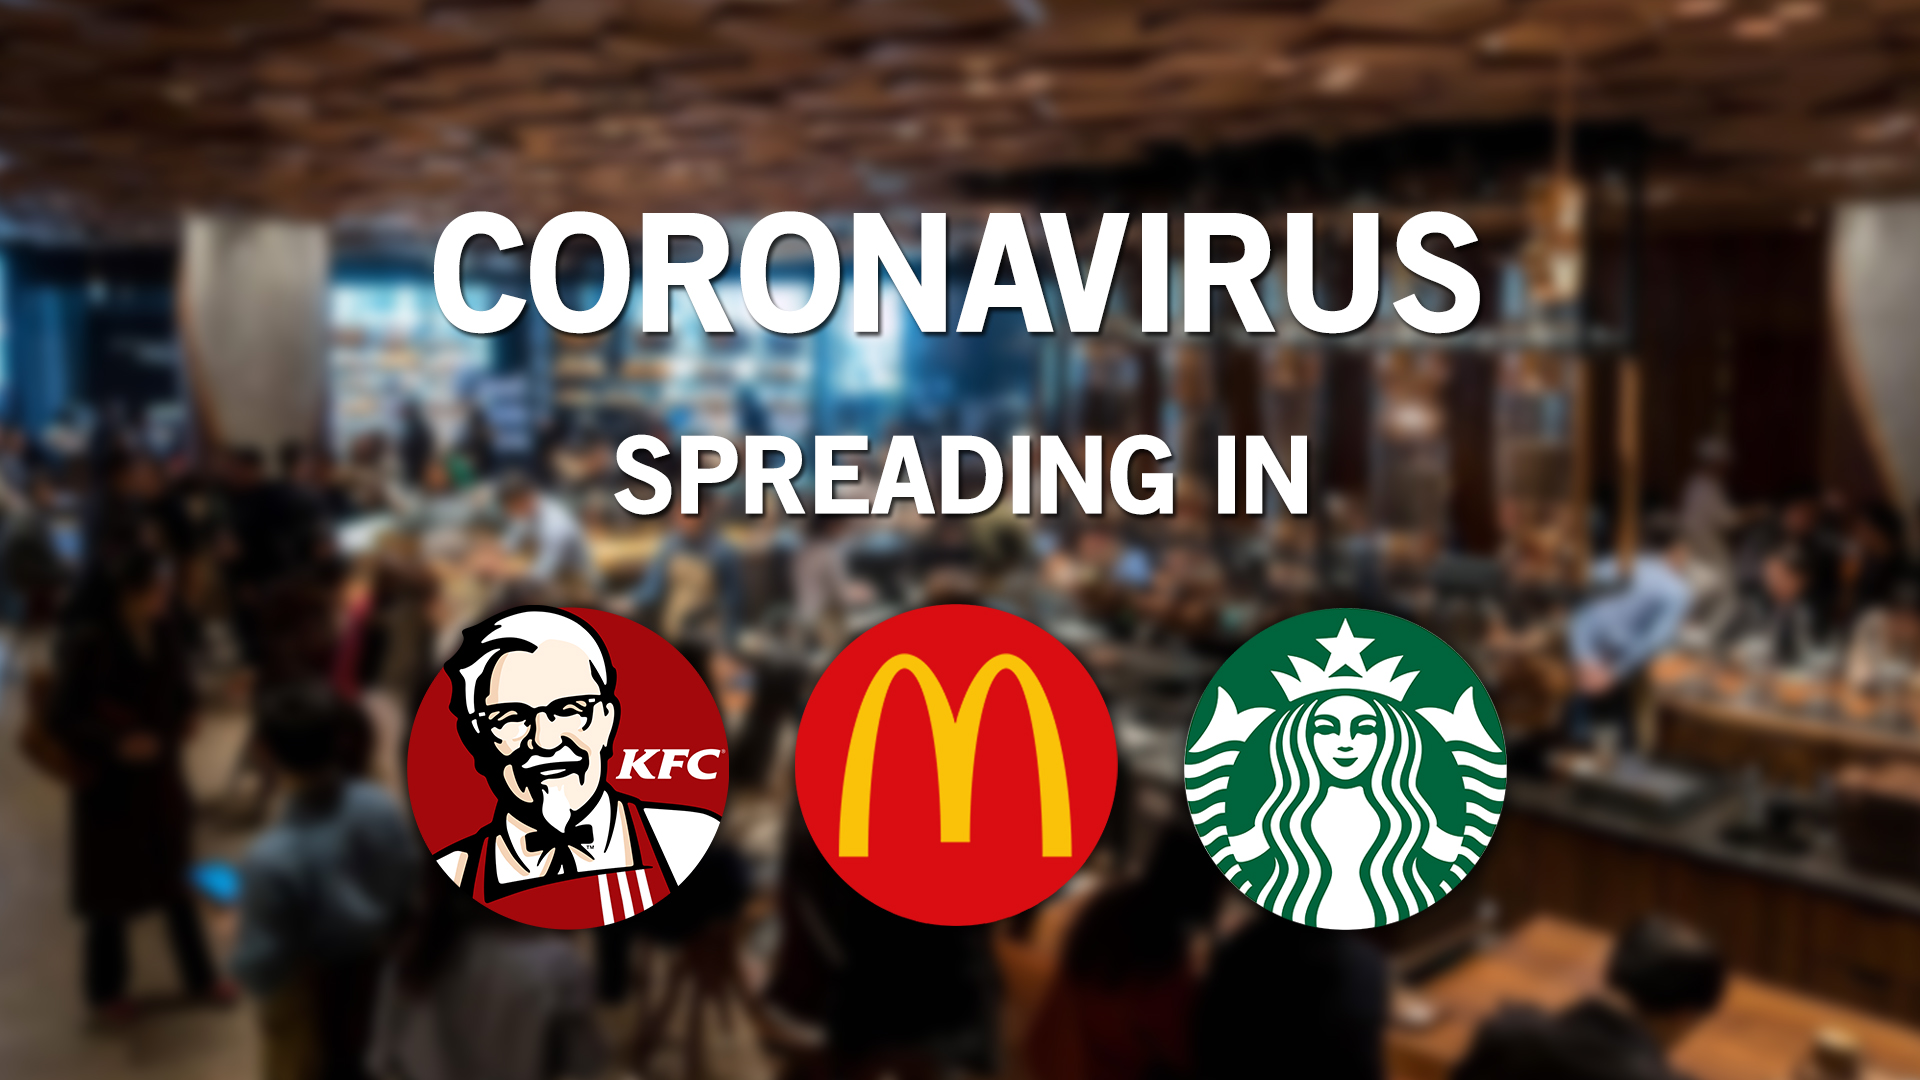 National ENQ Report on Coronavirus Impact – Is it Safe to Go to Starbucks, McDonald's or KFC?